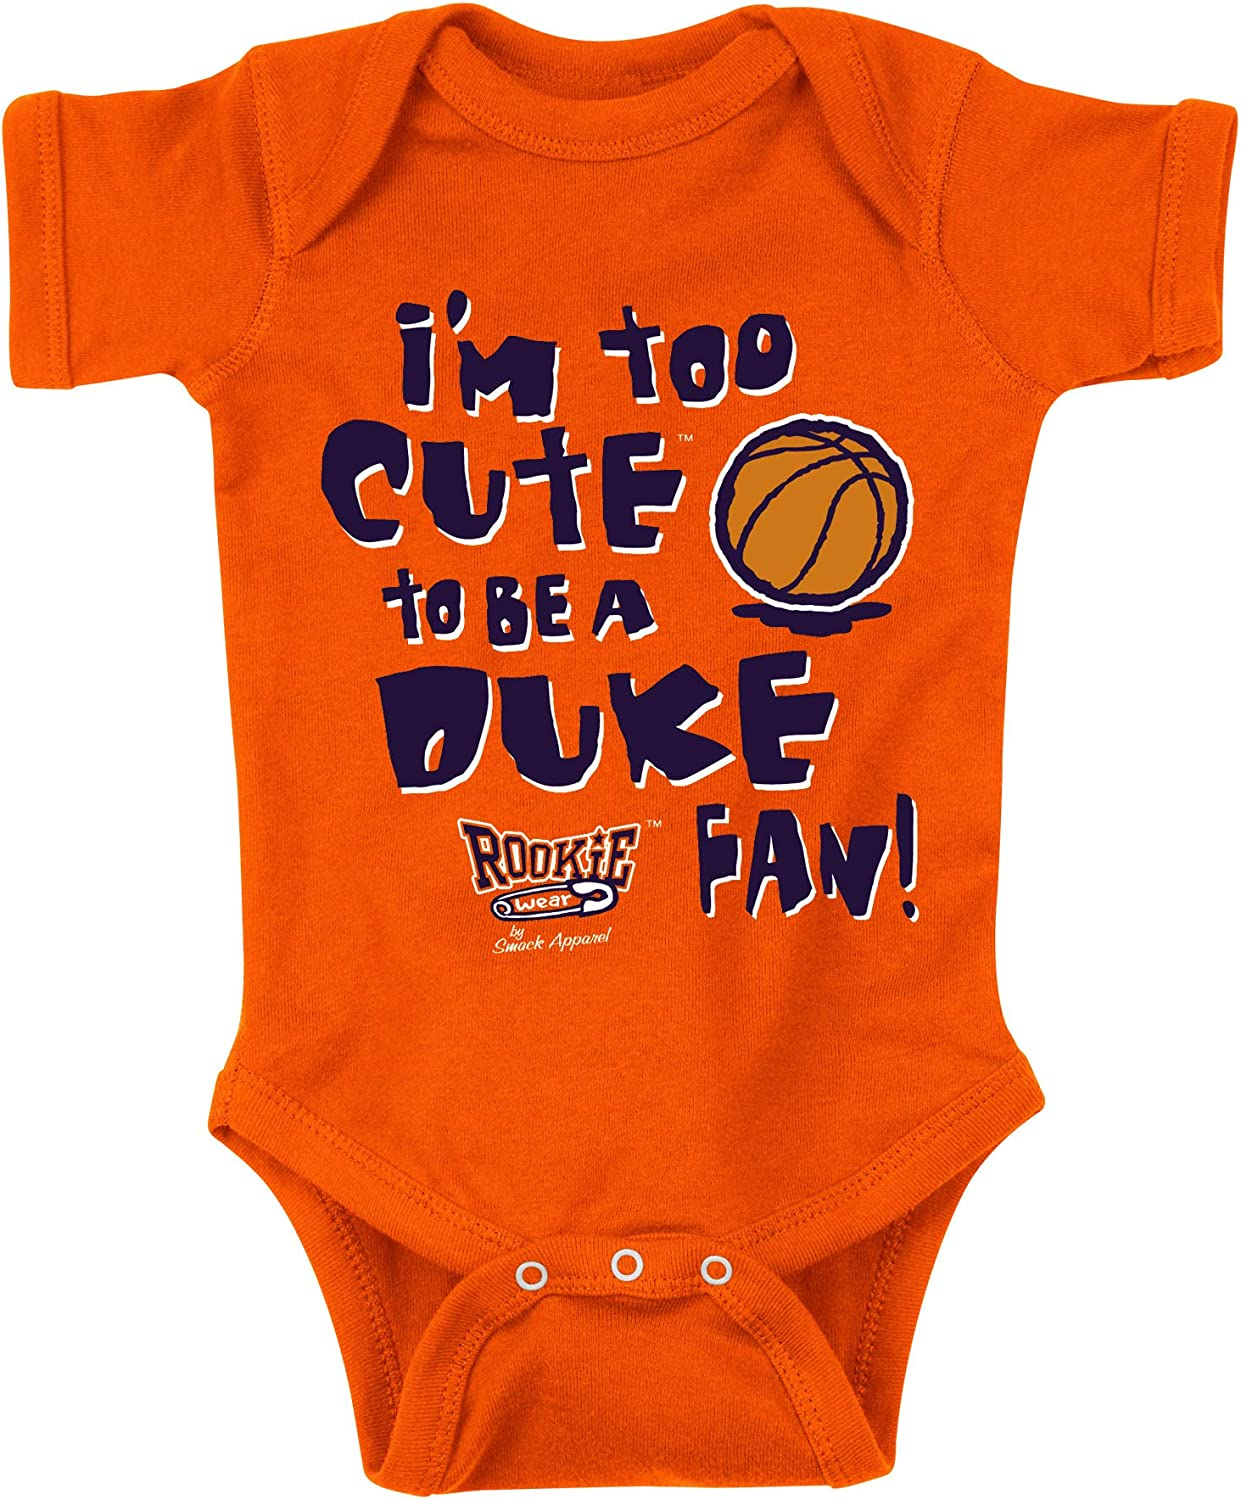 Smack Apparel Syracuse Basketball Fans Orange Onesie or Toddler Tee NB-4T Im Too Cute to be a Duke Fan